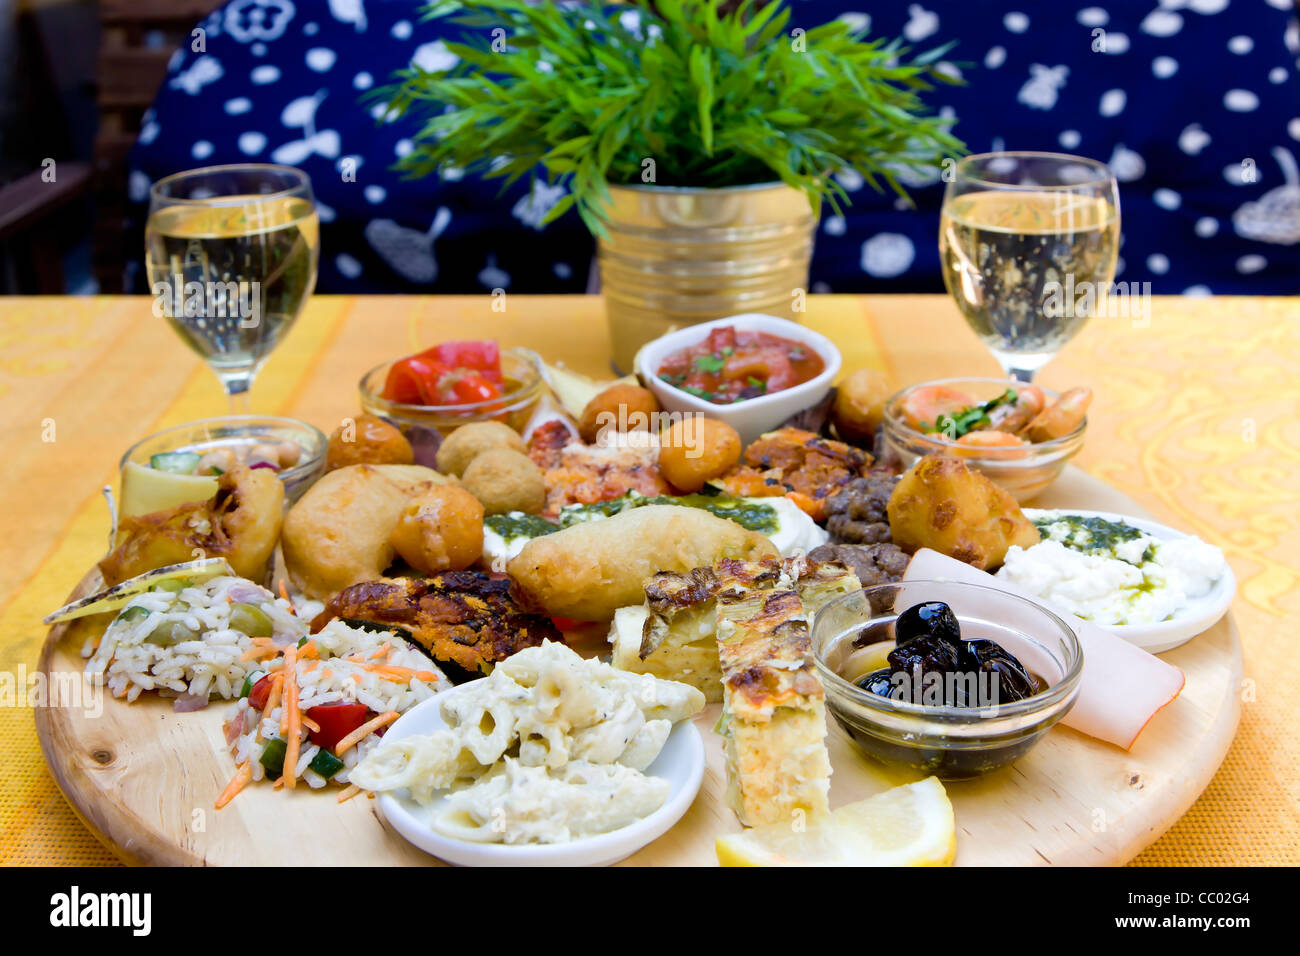 Plate of mixed Italien food - Stock Image